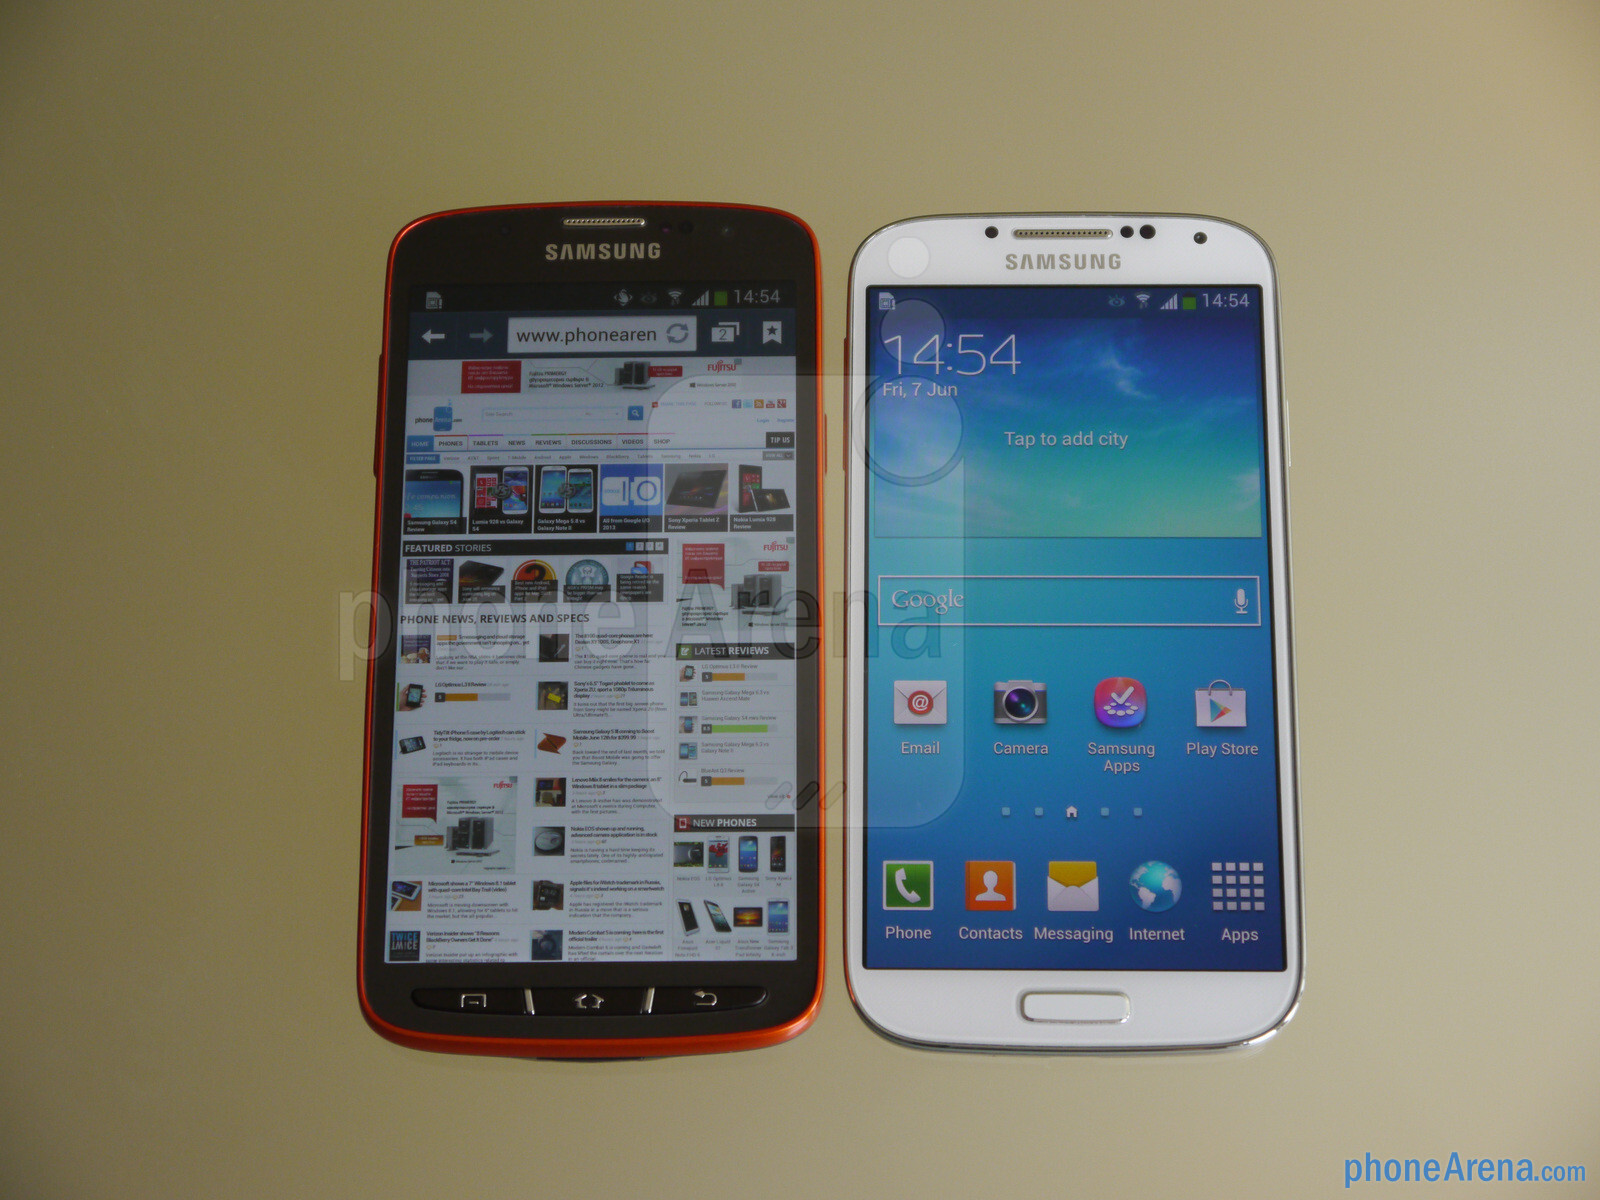 samsung galaxy s4 active hands on phonearena reviews